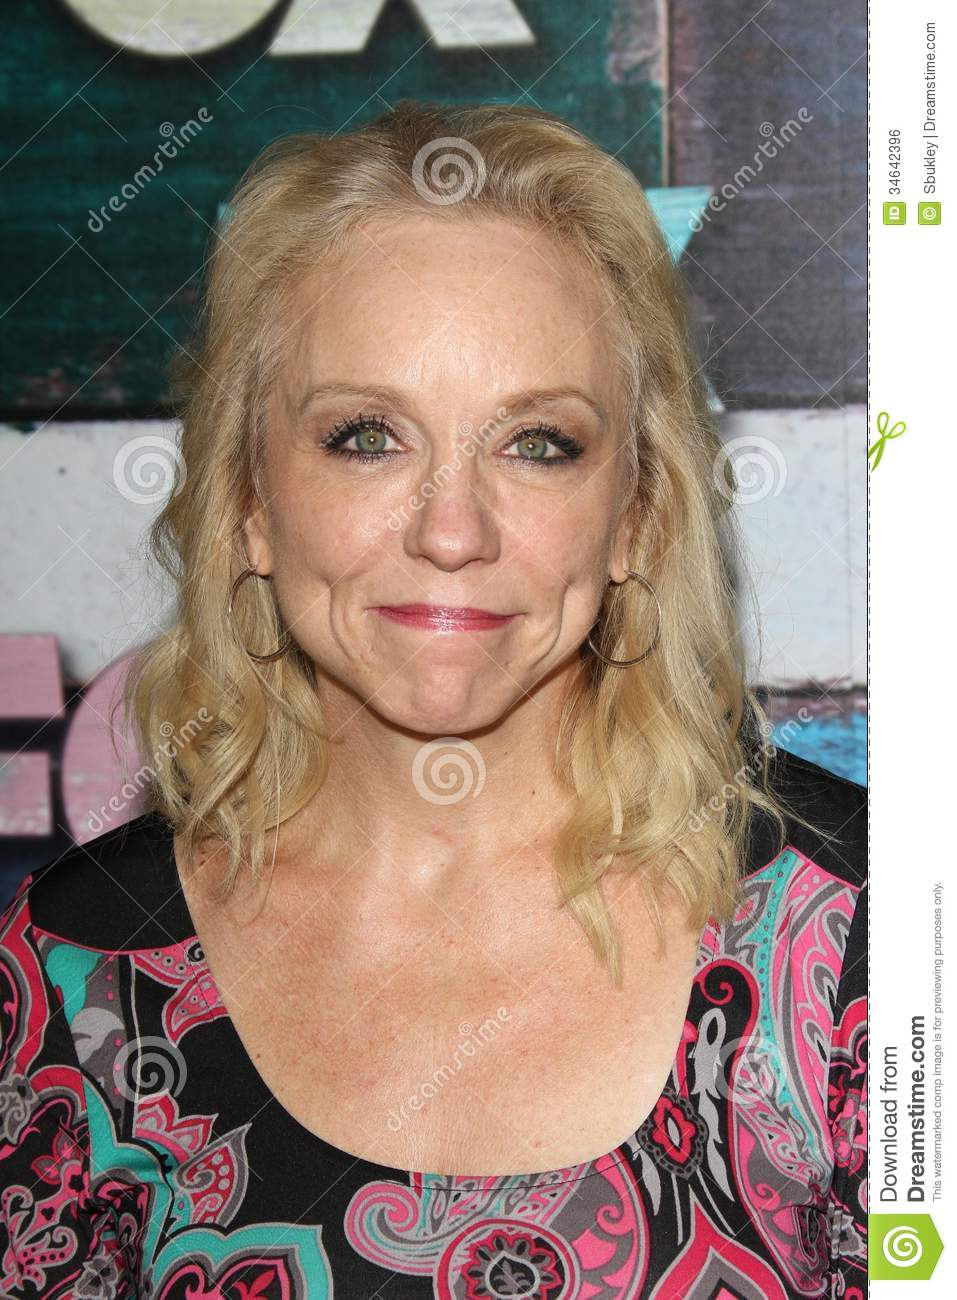 brett butler cancerbrett butler stand up, brett butler, brett butler imdb, brett butler wiki, brett butler actor, brett butler linkedin, brett butler baseball, brett butler smythe, brett butler 2015, brett butler celebrity net worth, brett butler stats, brett butler homeless, brett butler biography, brett butler psychic, brett butler cancer, brett butler grace under fire, brett butler smythe twitter, brett butler-smythe instagram